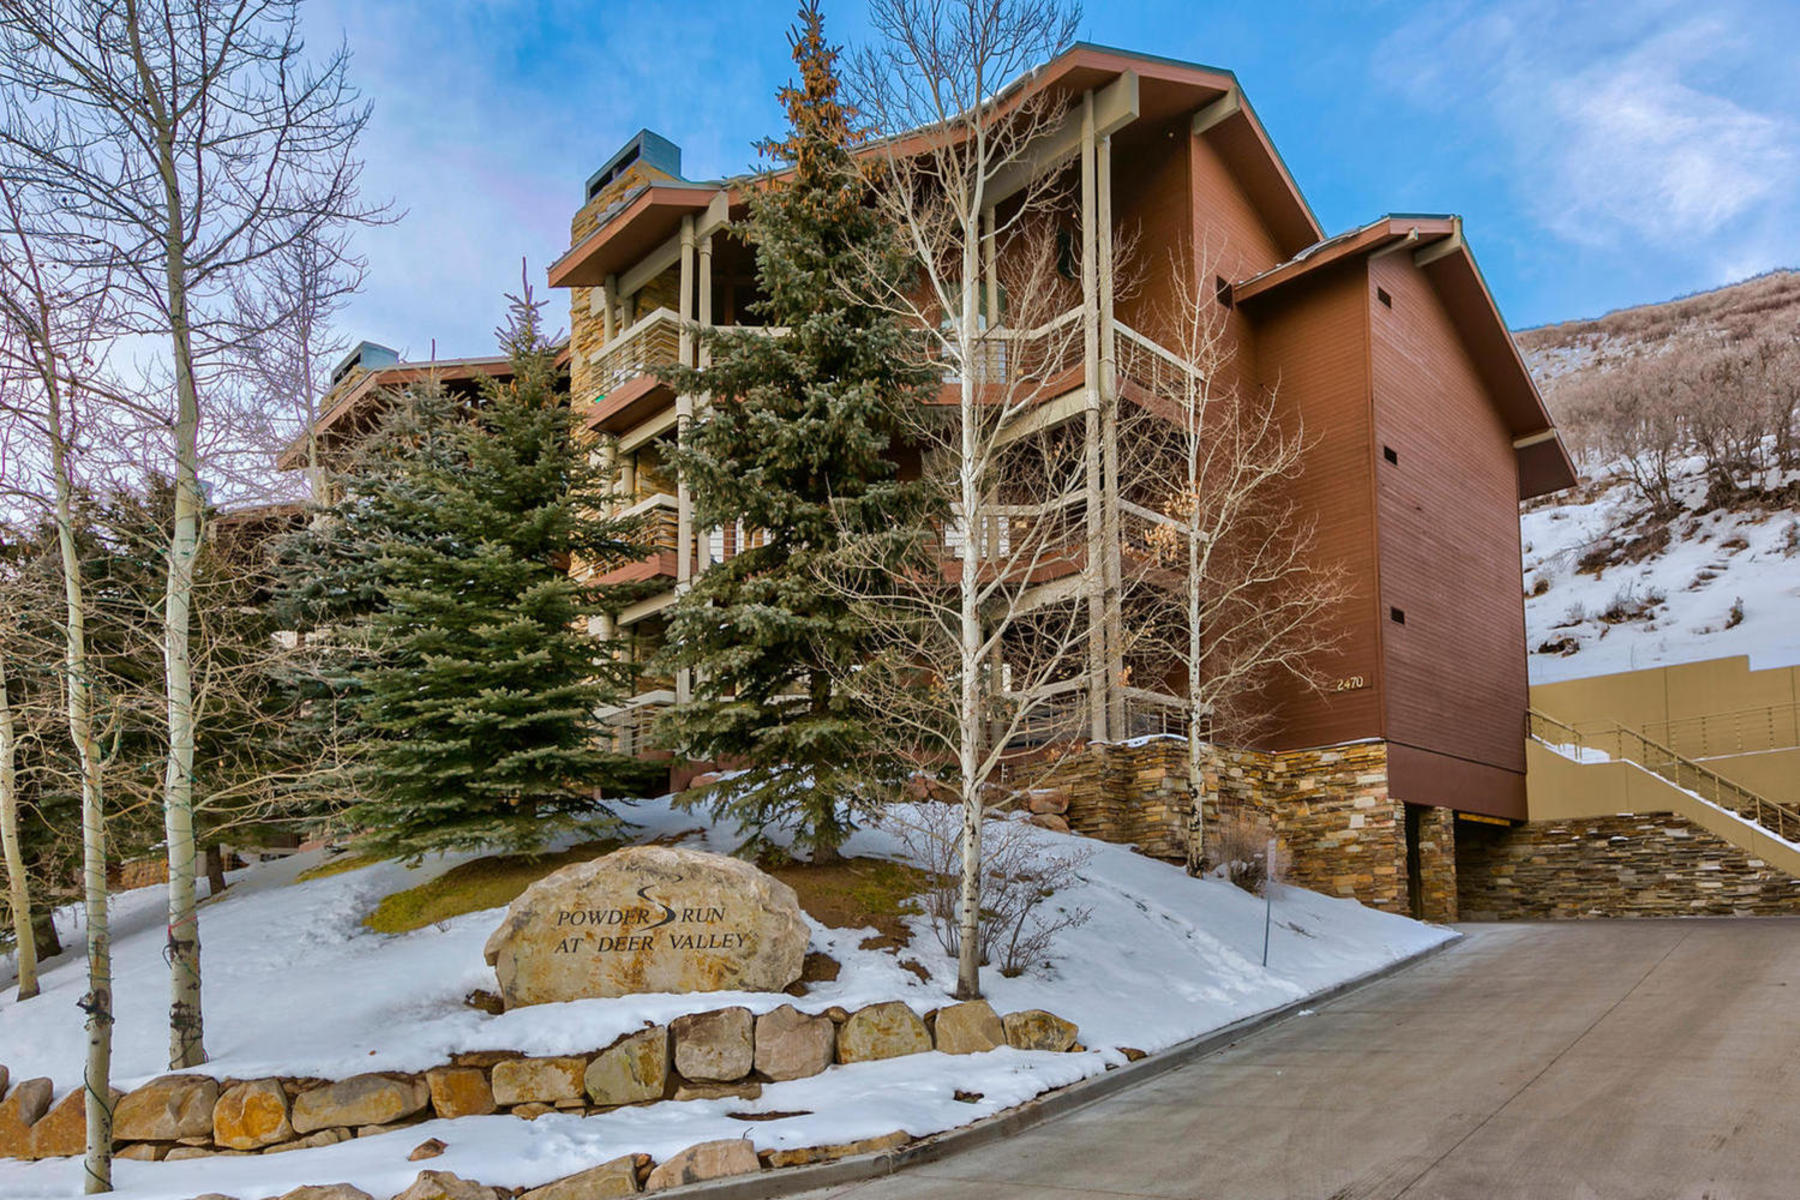 Condomínio para Venda às Fully Furnished and Updated Steps from the Deer Valley Base 2470 E Deer Valley Dr #B-11 Park City, Utah, 84060 Estados Unidos